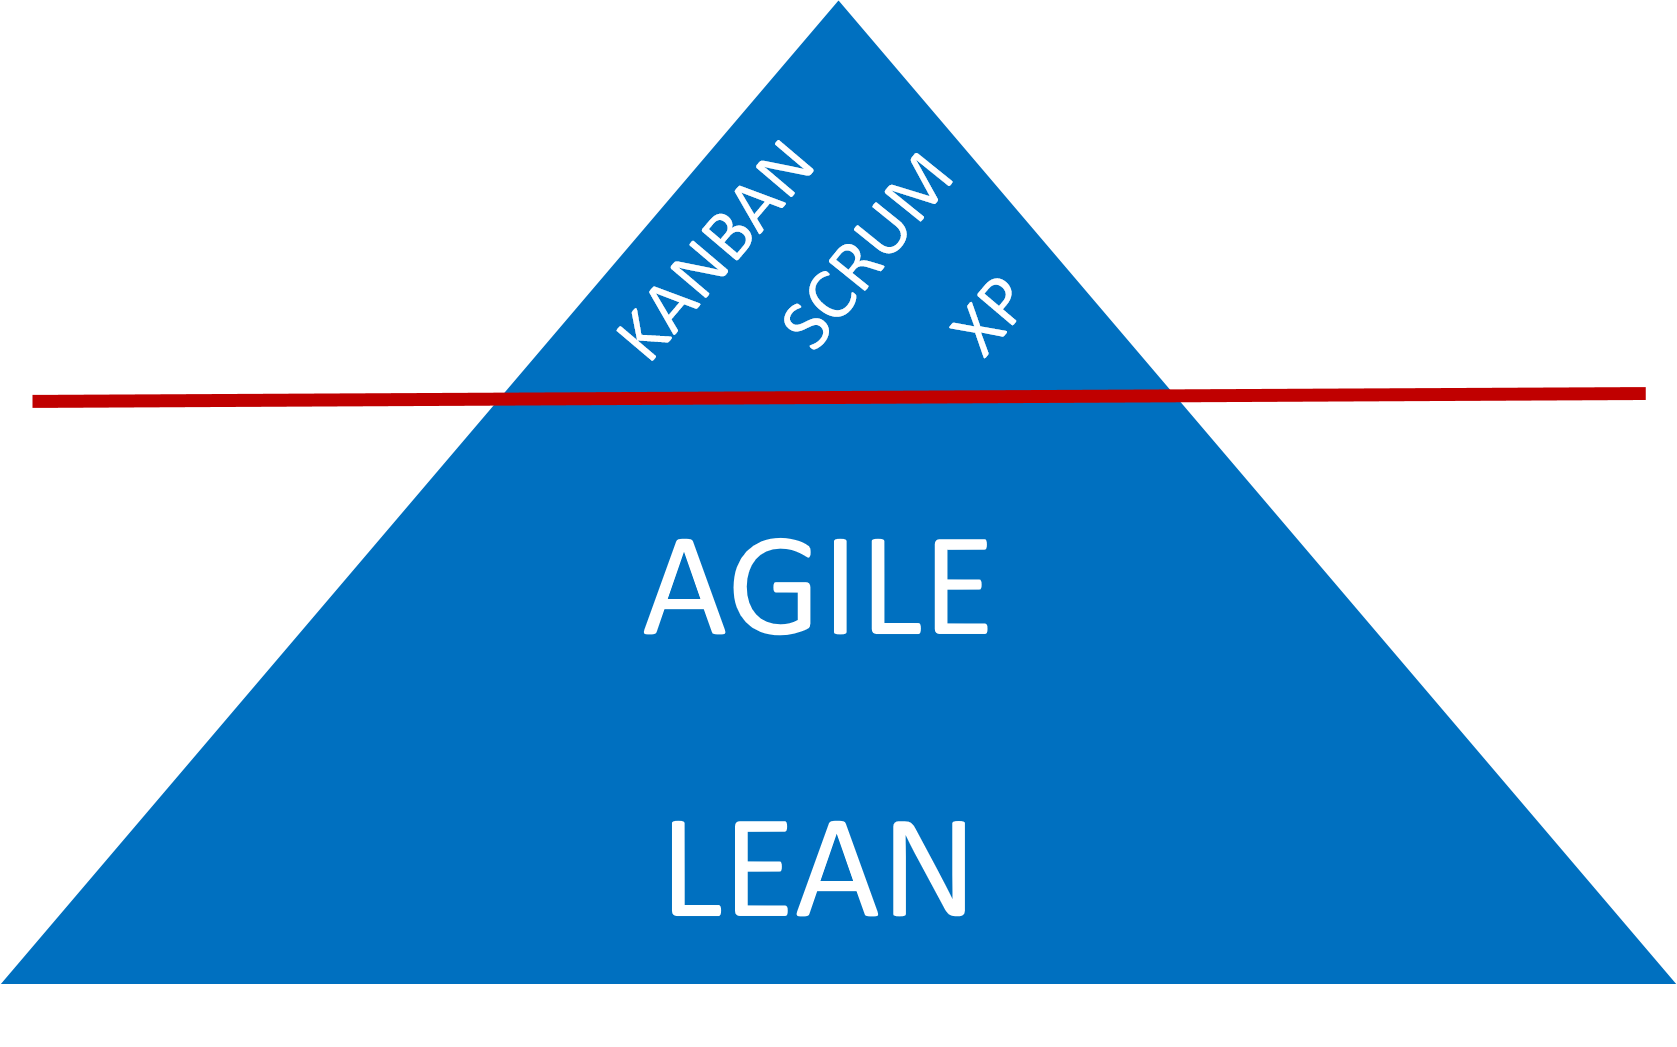 Kanban complements agile and lean